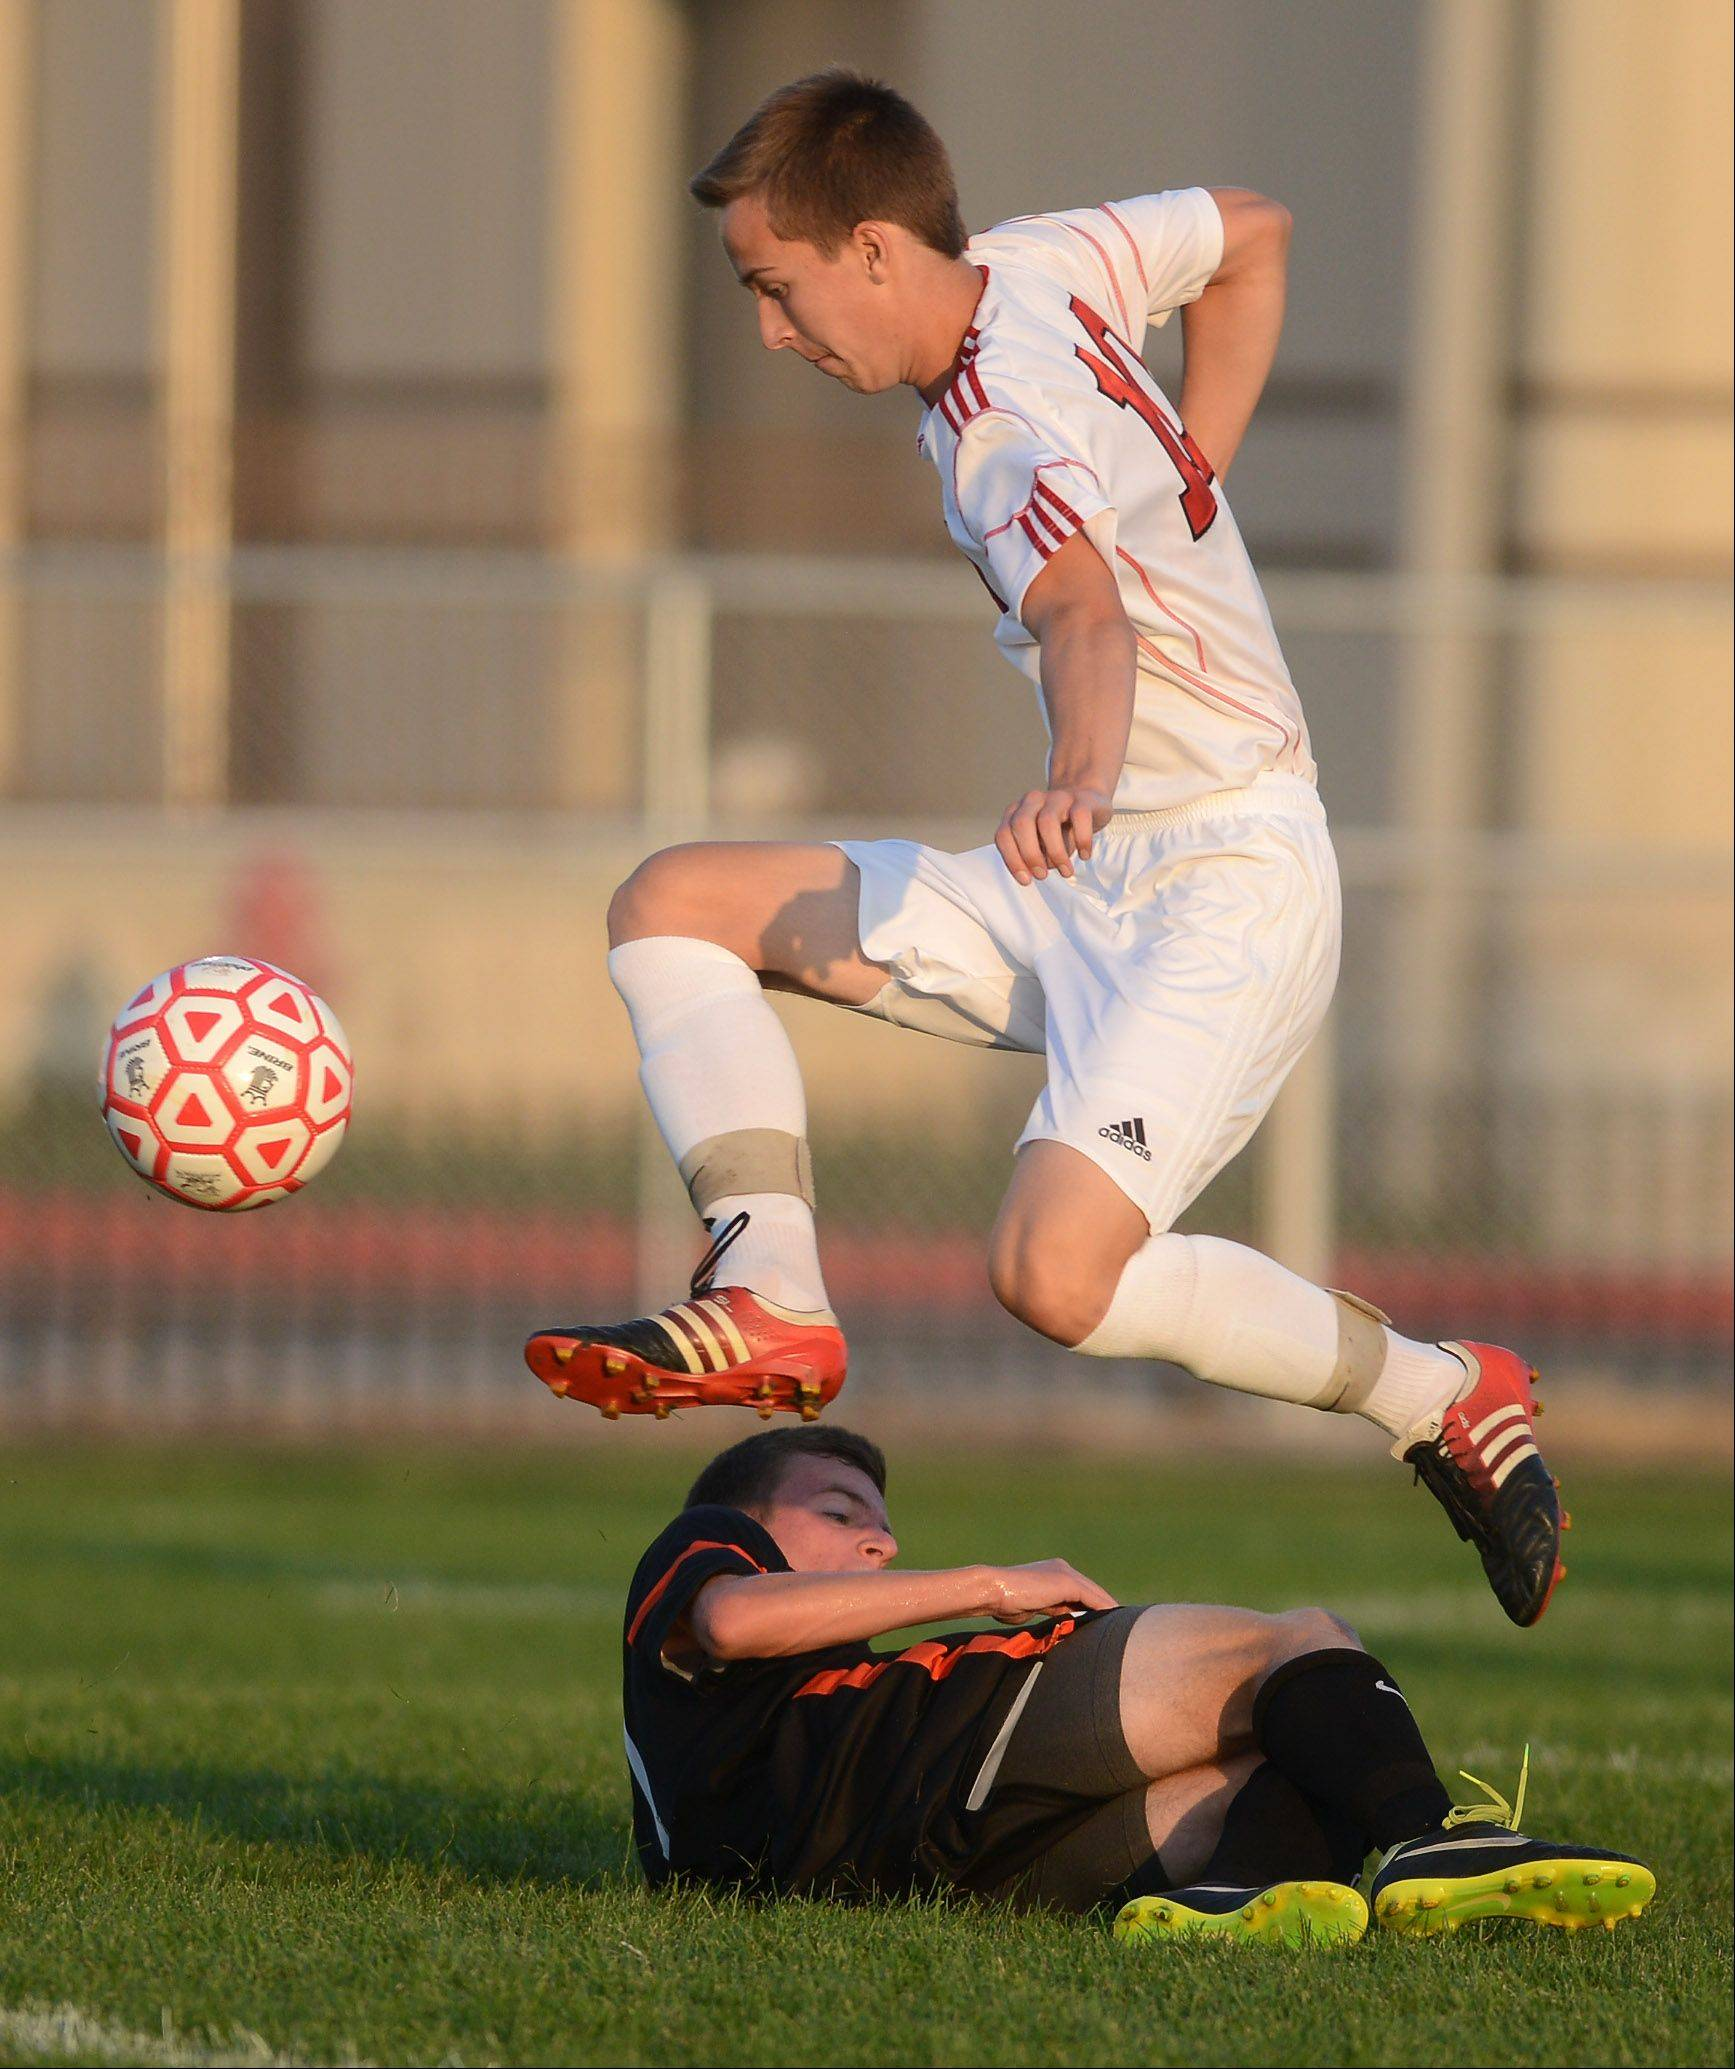 Batavia's Adam Heinz hops over St. Charles East's Jacob Sterling during Thursday's soccer game in Batavia.